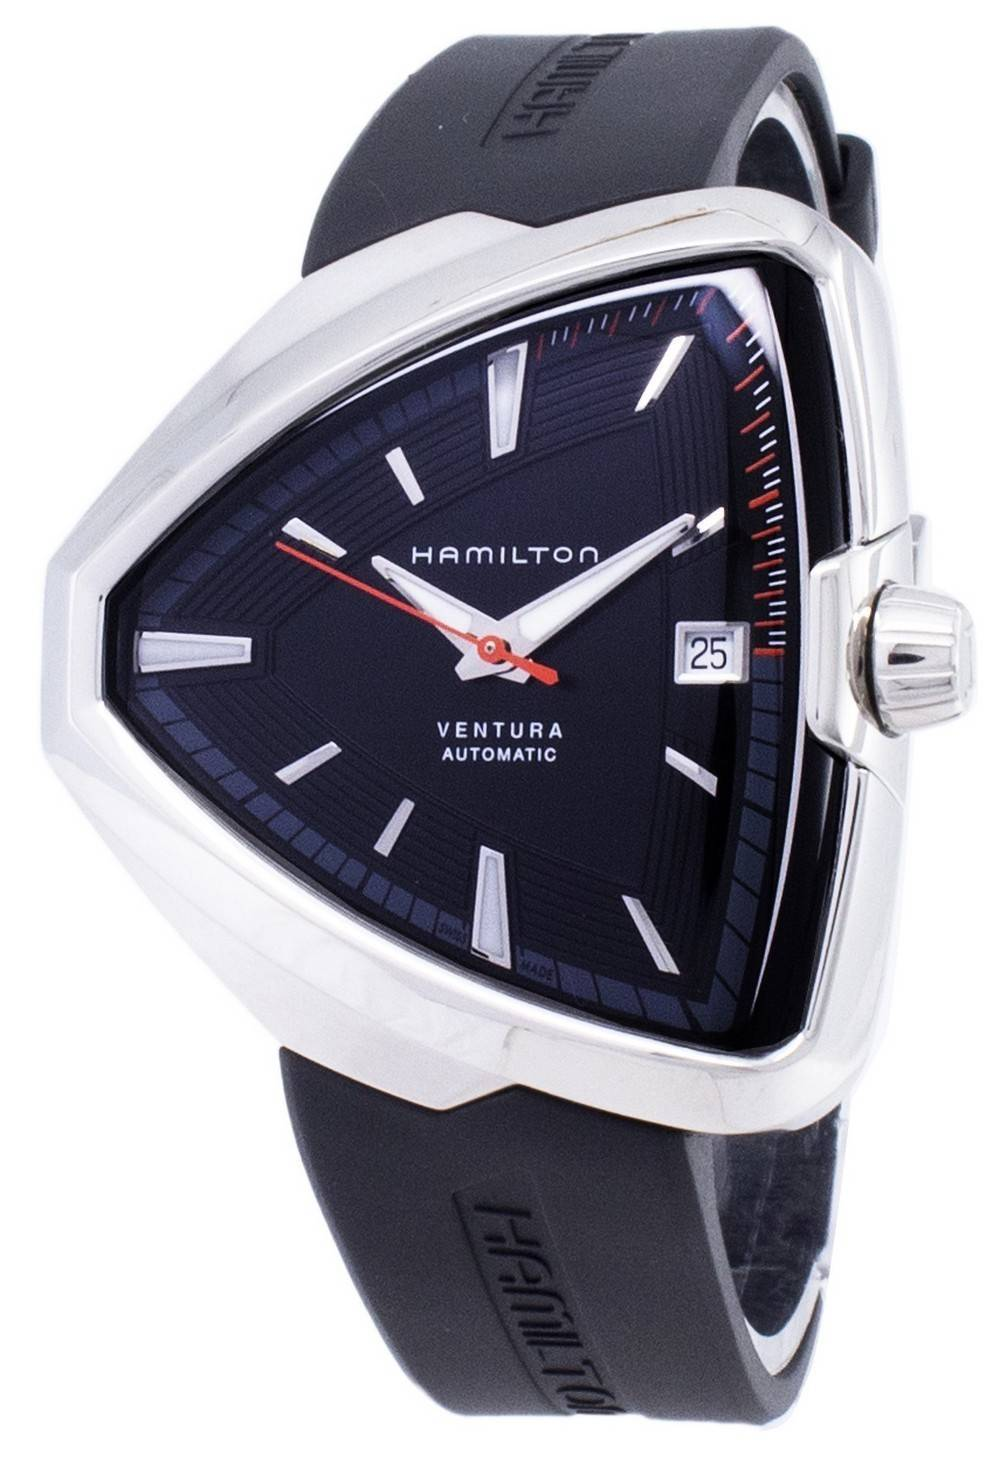 c1a660761 Hamilton Watches for Men & Women | Automatic, Khaki Field, King, Intramatic  Watches